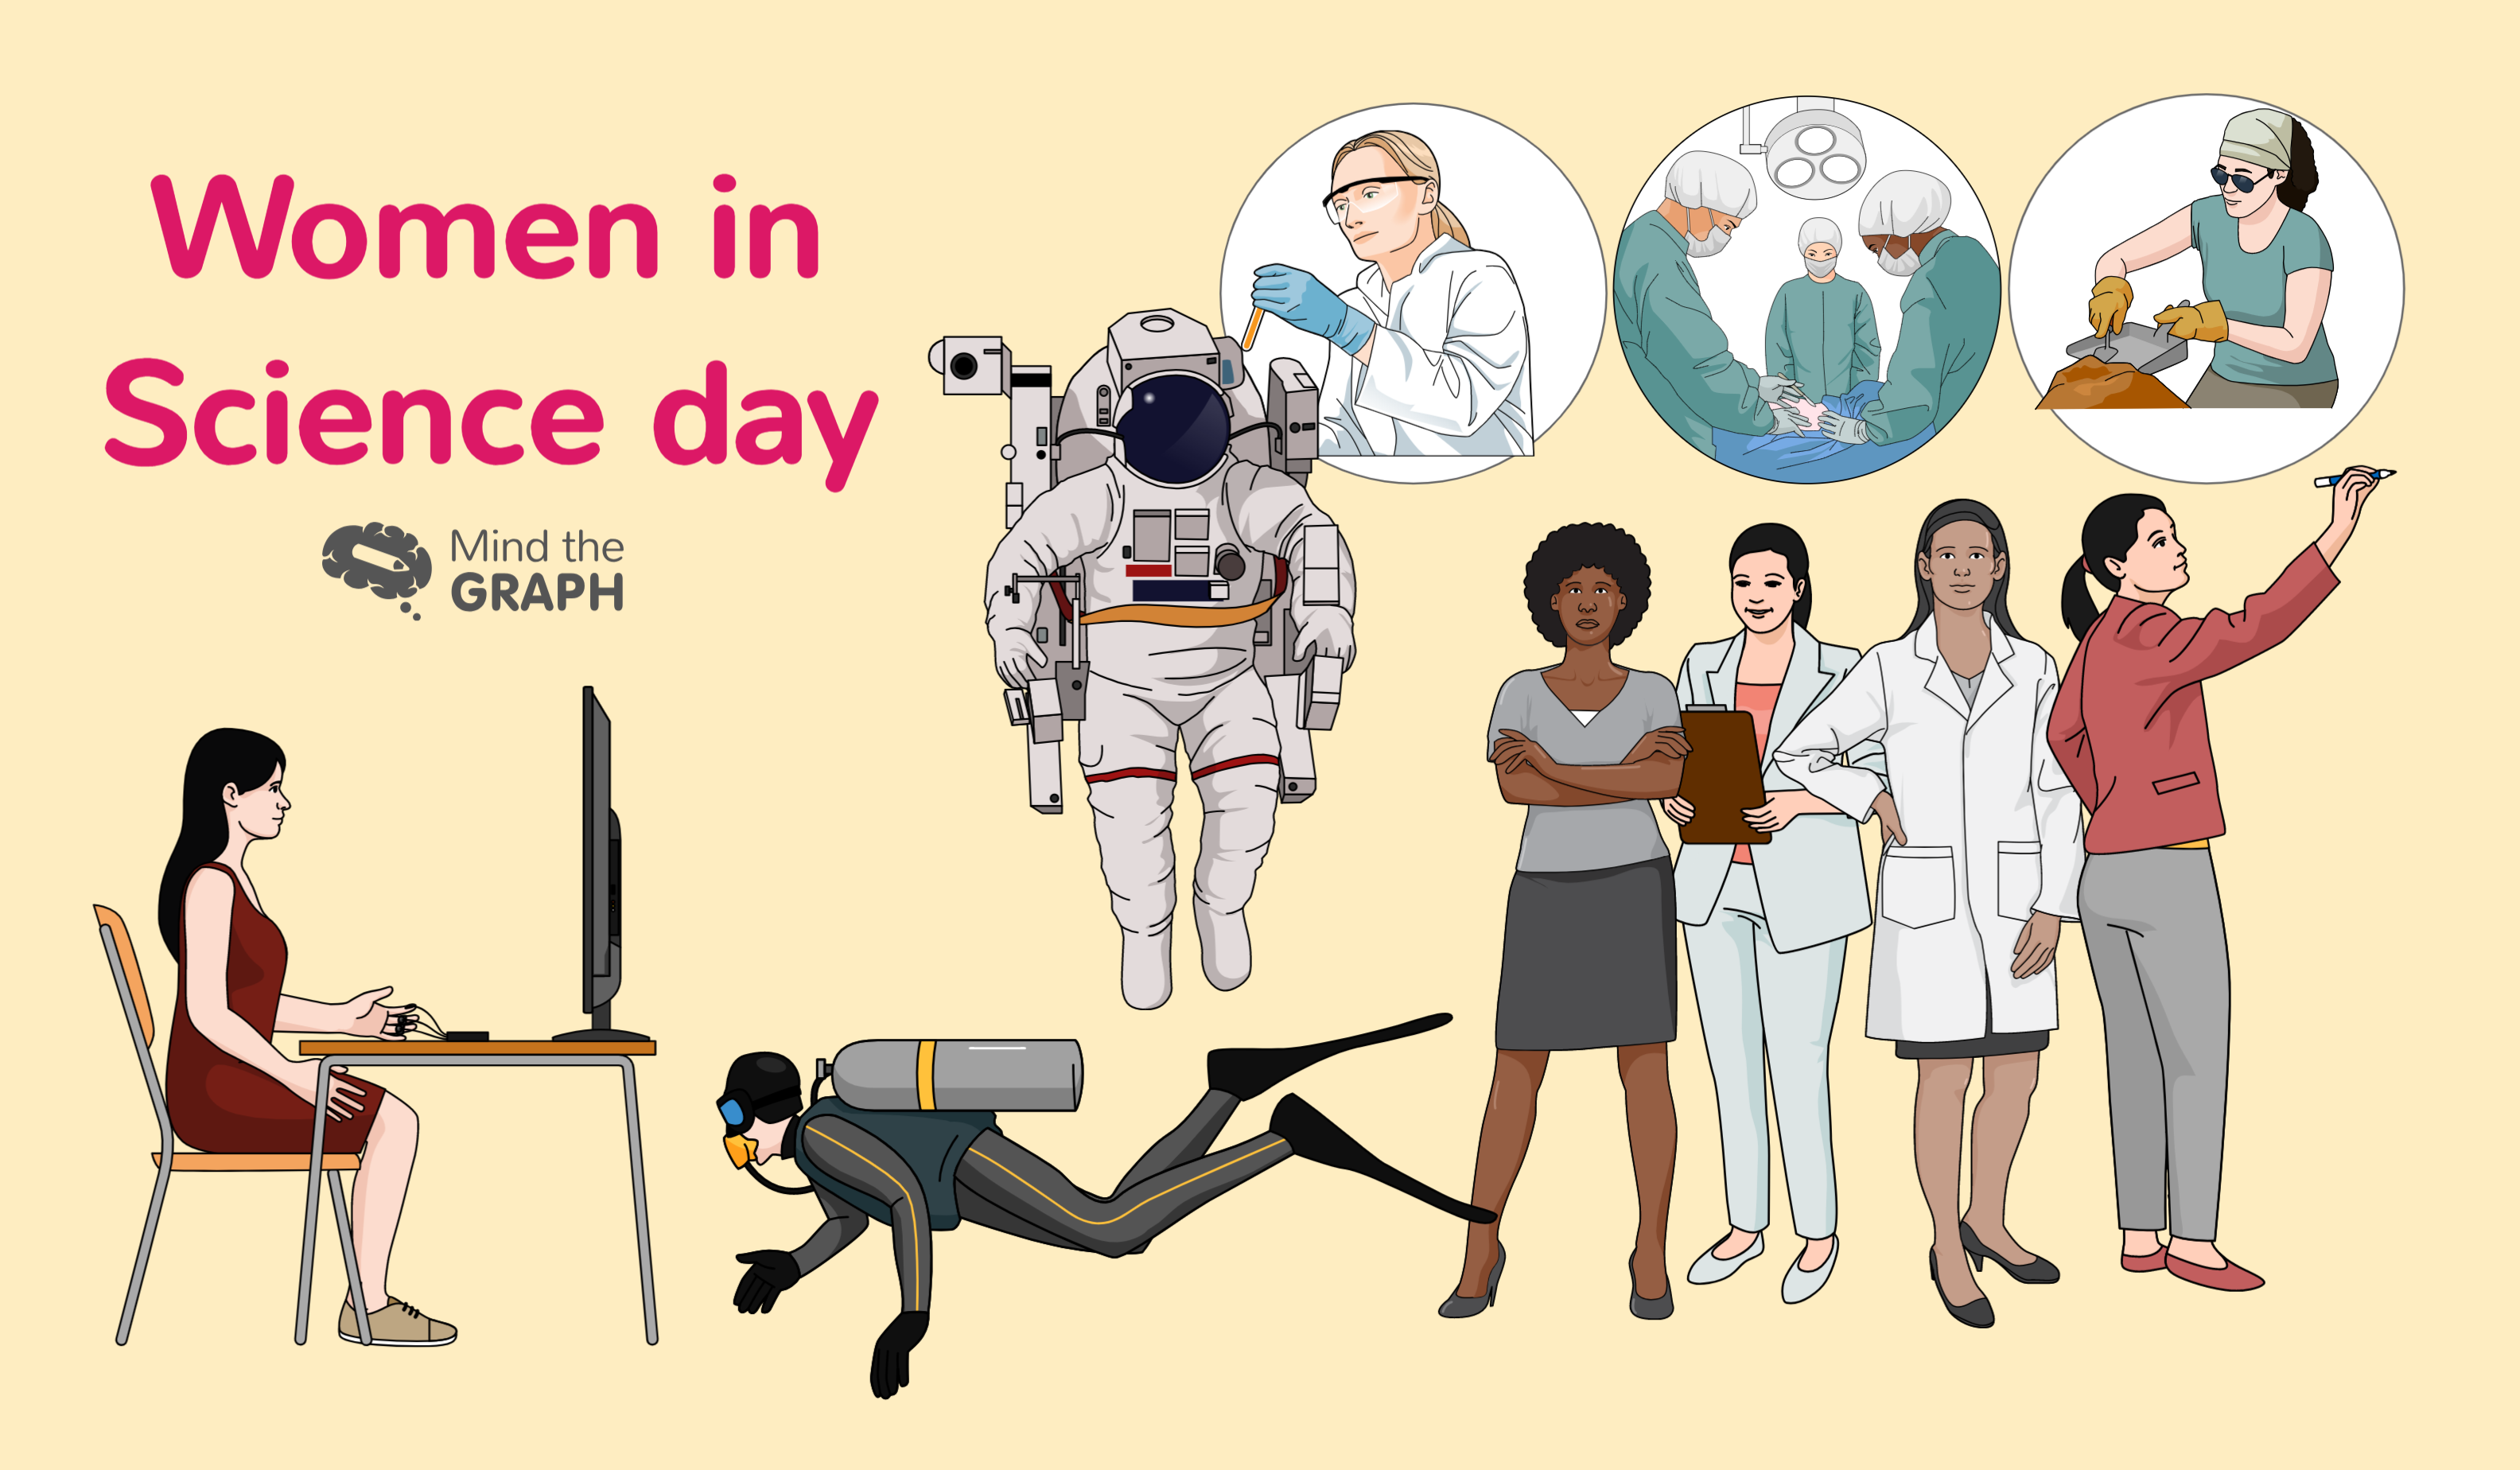 Women in Science day: yes, we can